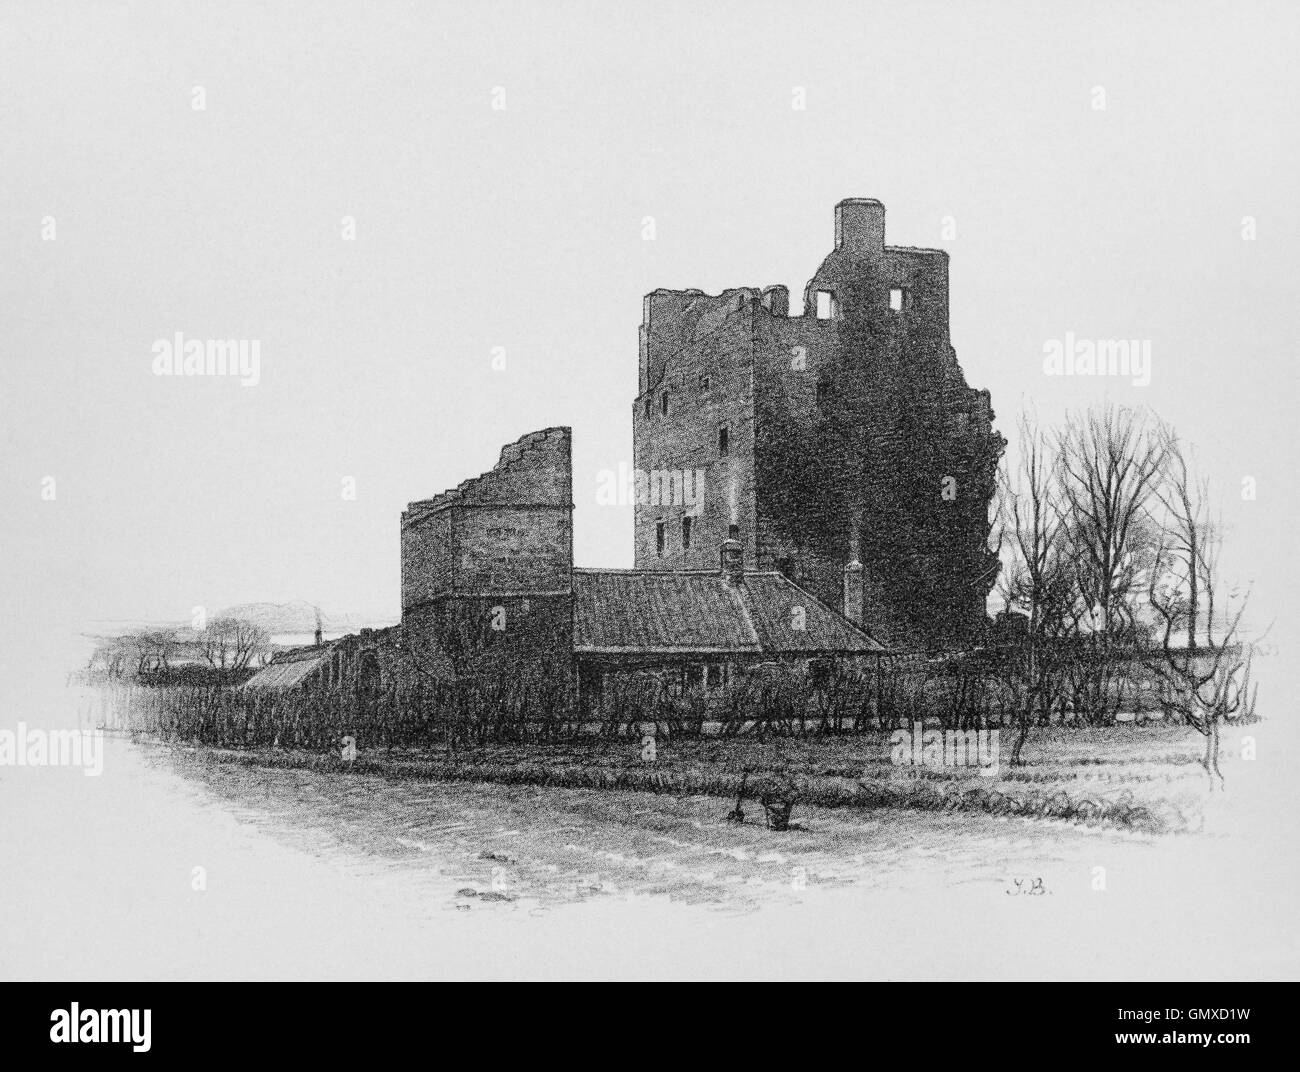 Redhouse Castle, a ruined tower house castle, the first version of the castle appears to have been a religious institution, - Stock Image